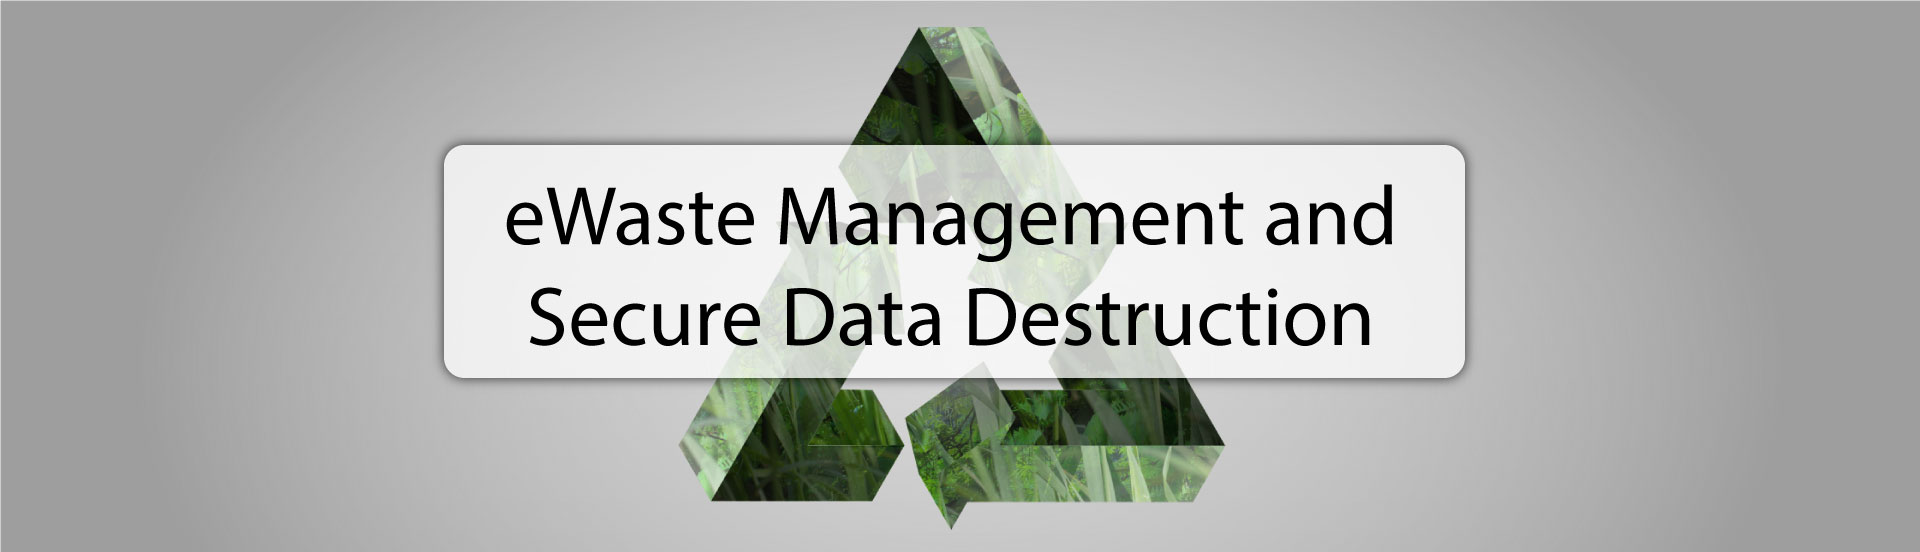 ewaste management and secure data destruction header